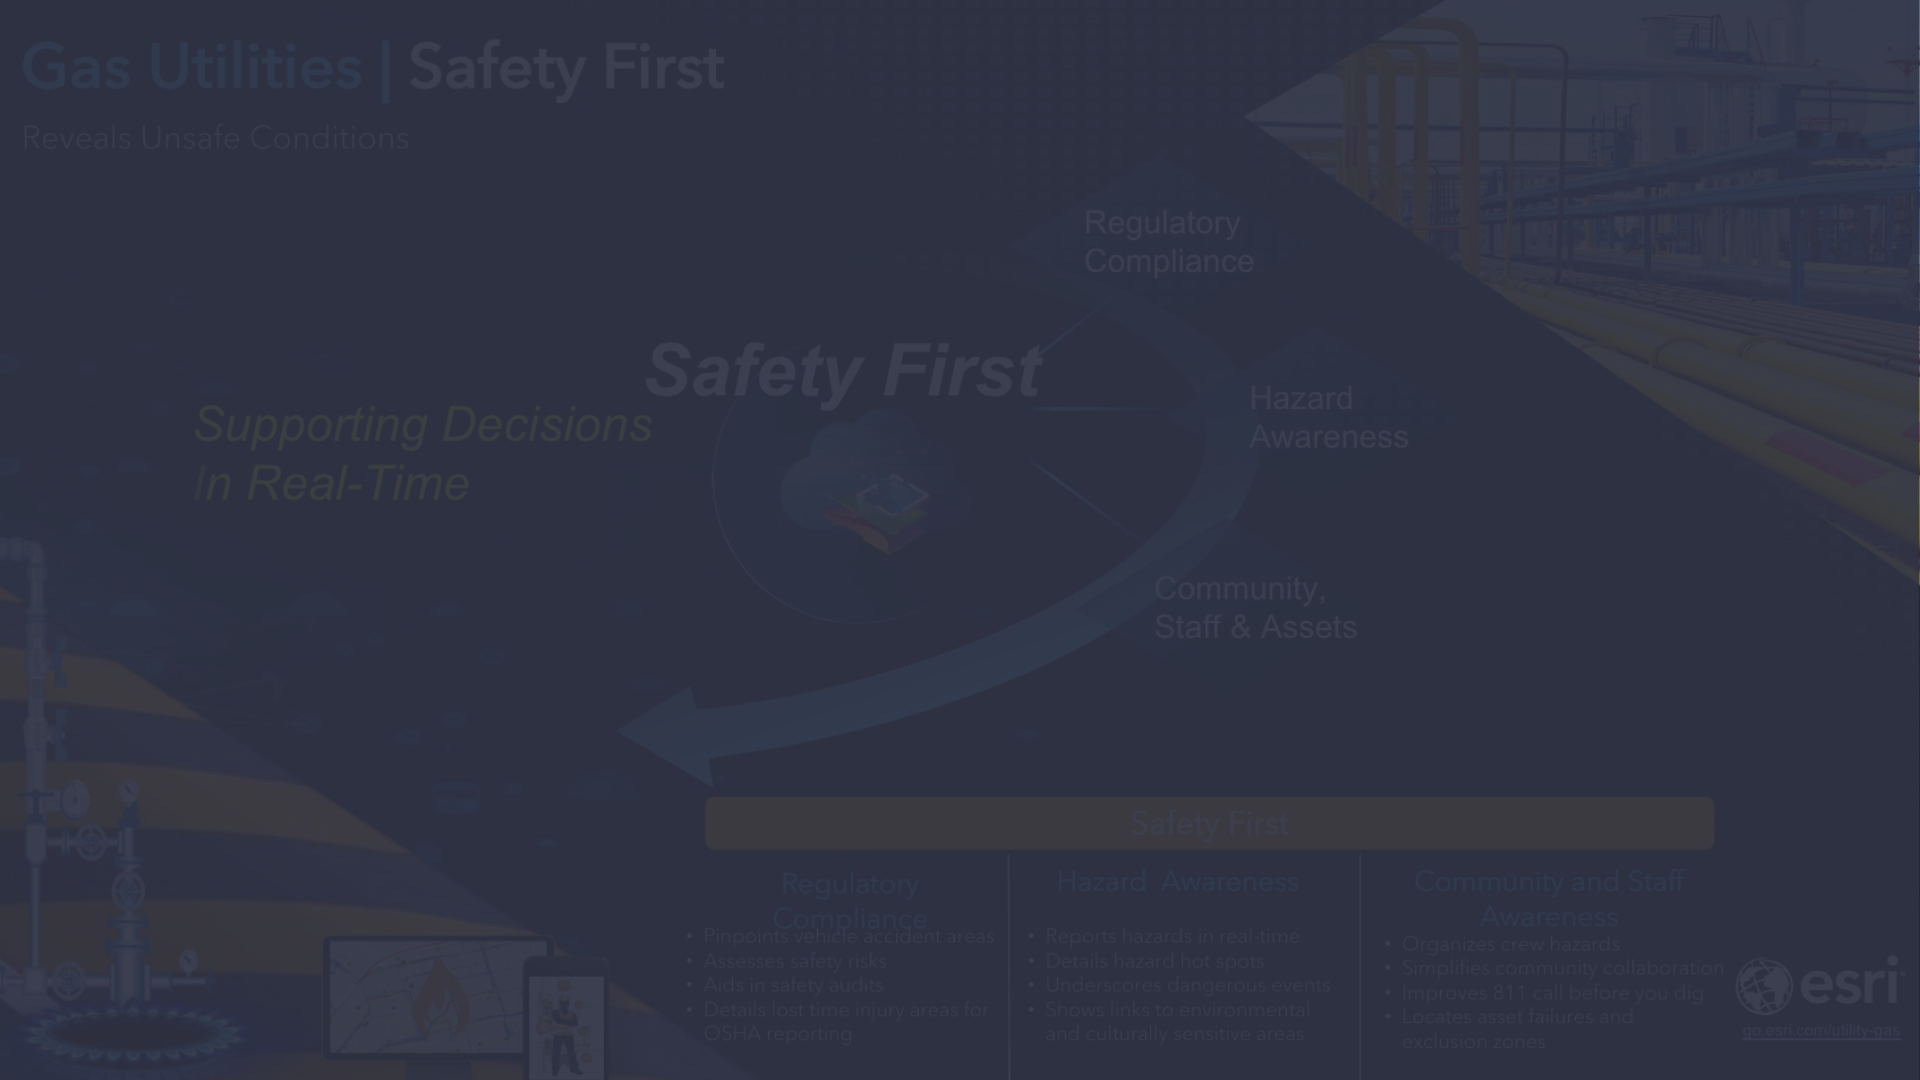 Gas Utilities: Safety Management